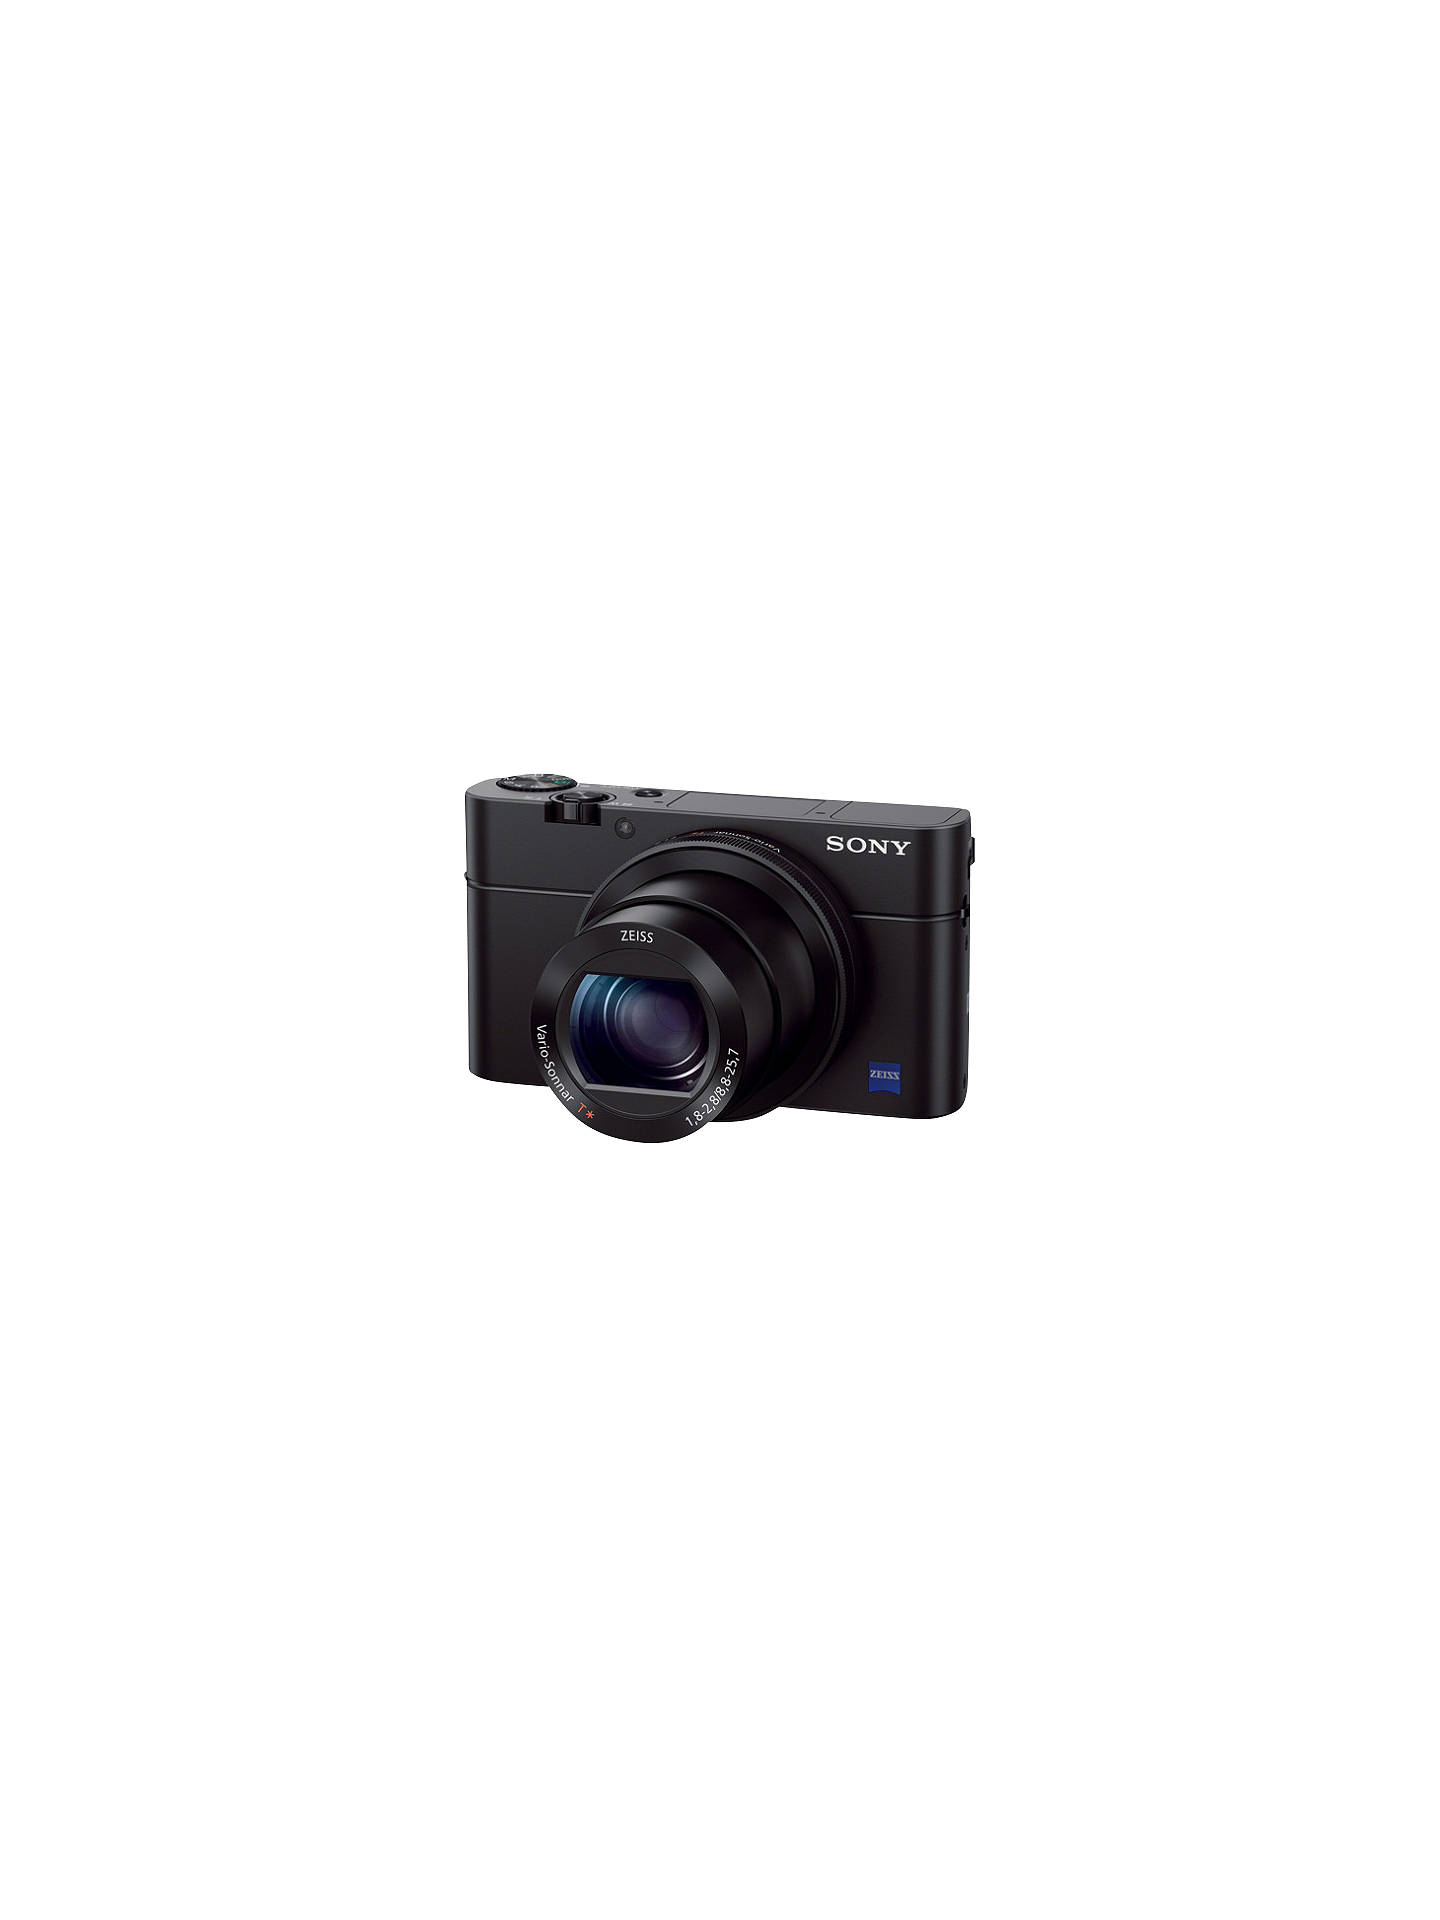 "Buy Sony Cyber-shot DSC-RX100 III Camera, HD 1080p, 20.1MP, 2.9x Optical Zoom, Wi-Fi, NFC, OLED EVF, 3"" Screen, Black Online at johnlewis.com"